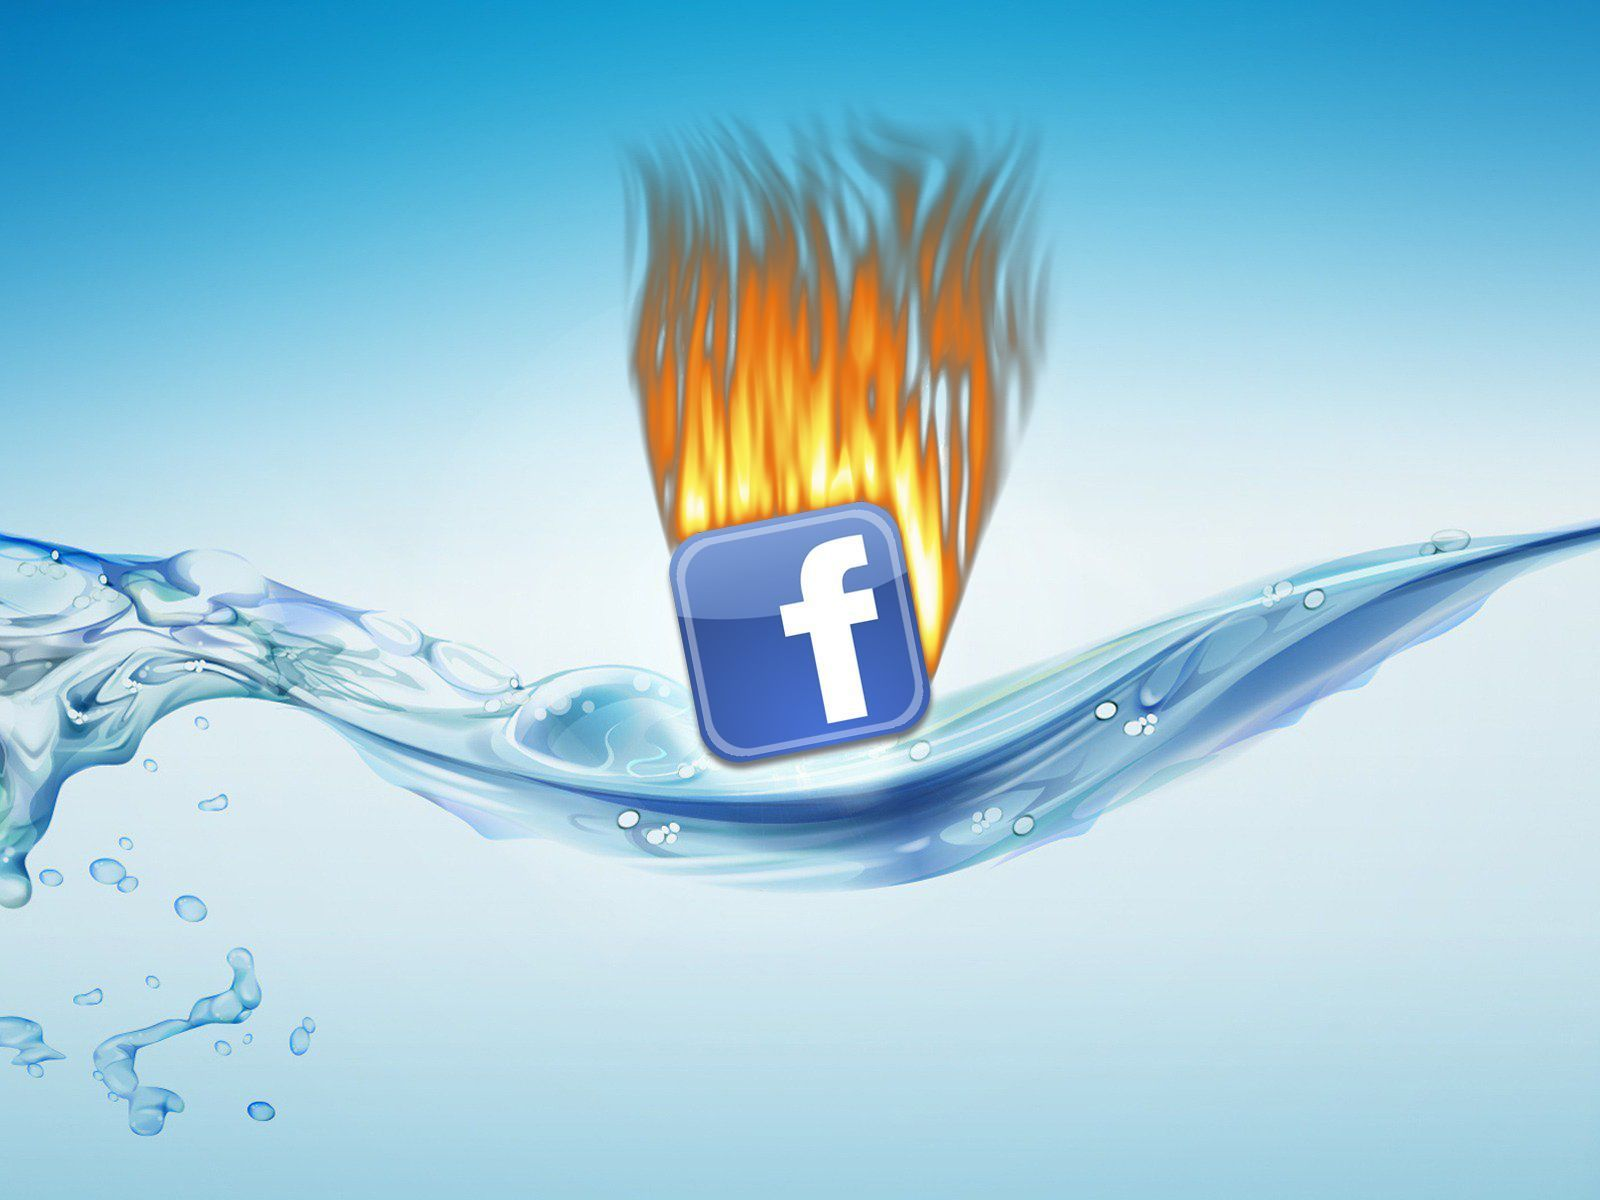 Facebook Wallpapers Backgrounds Hd 20